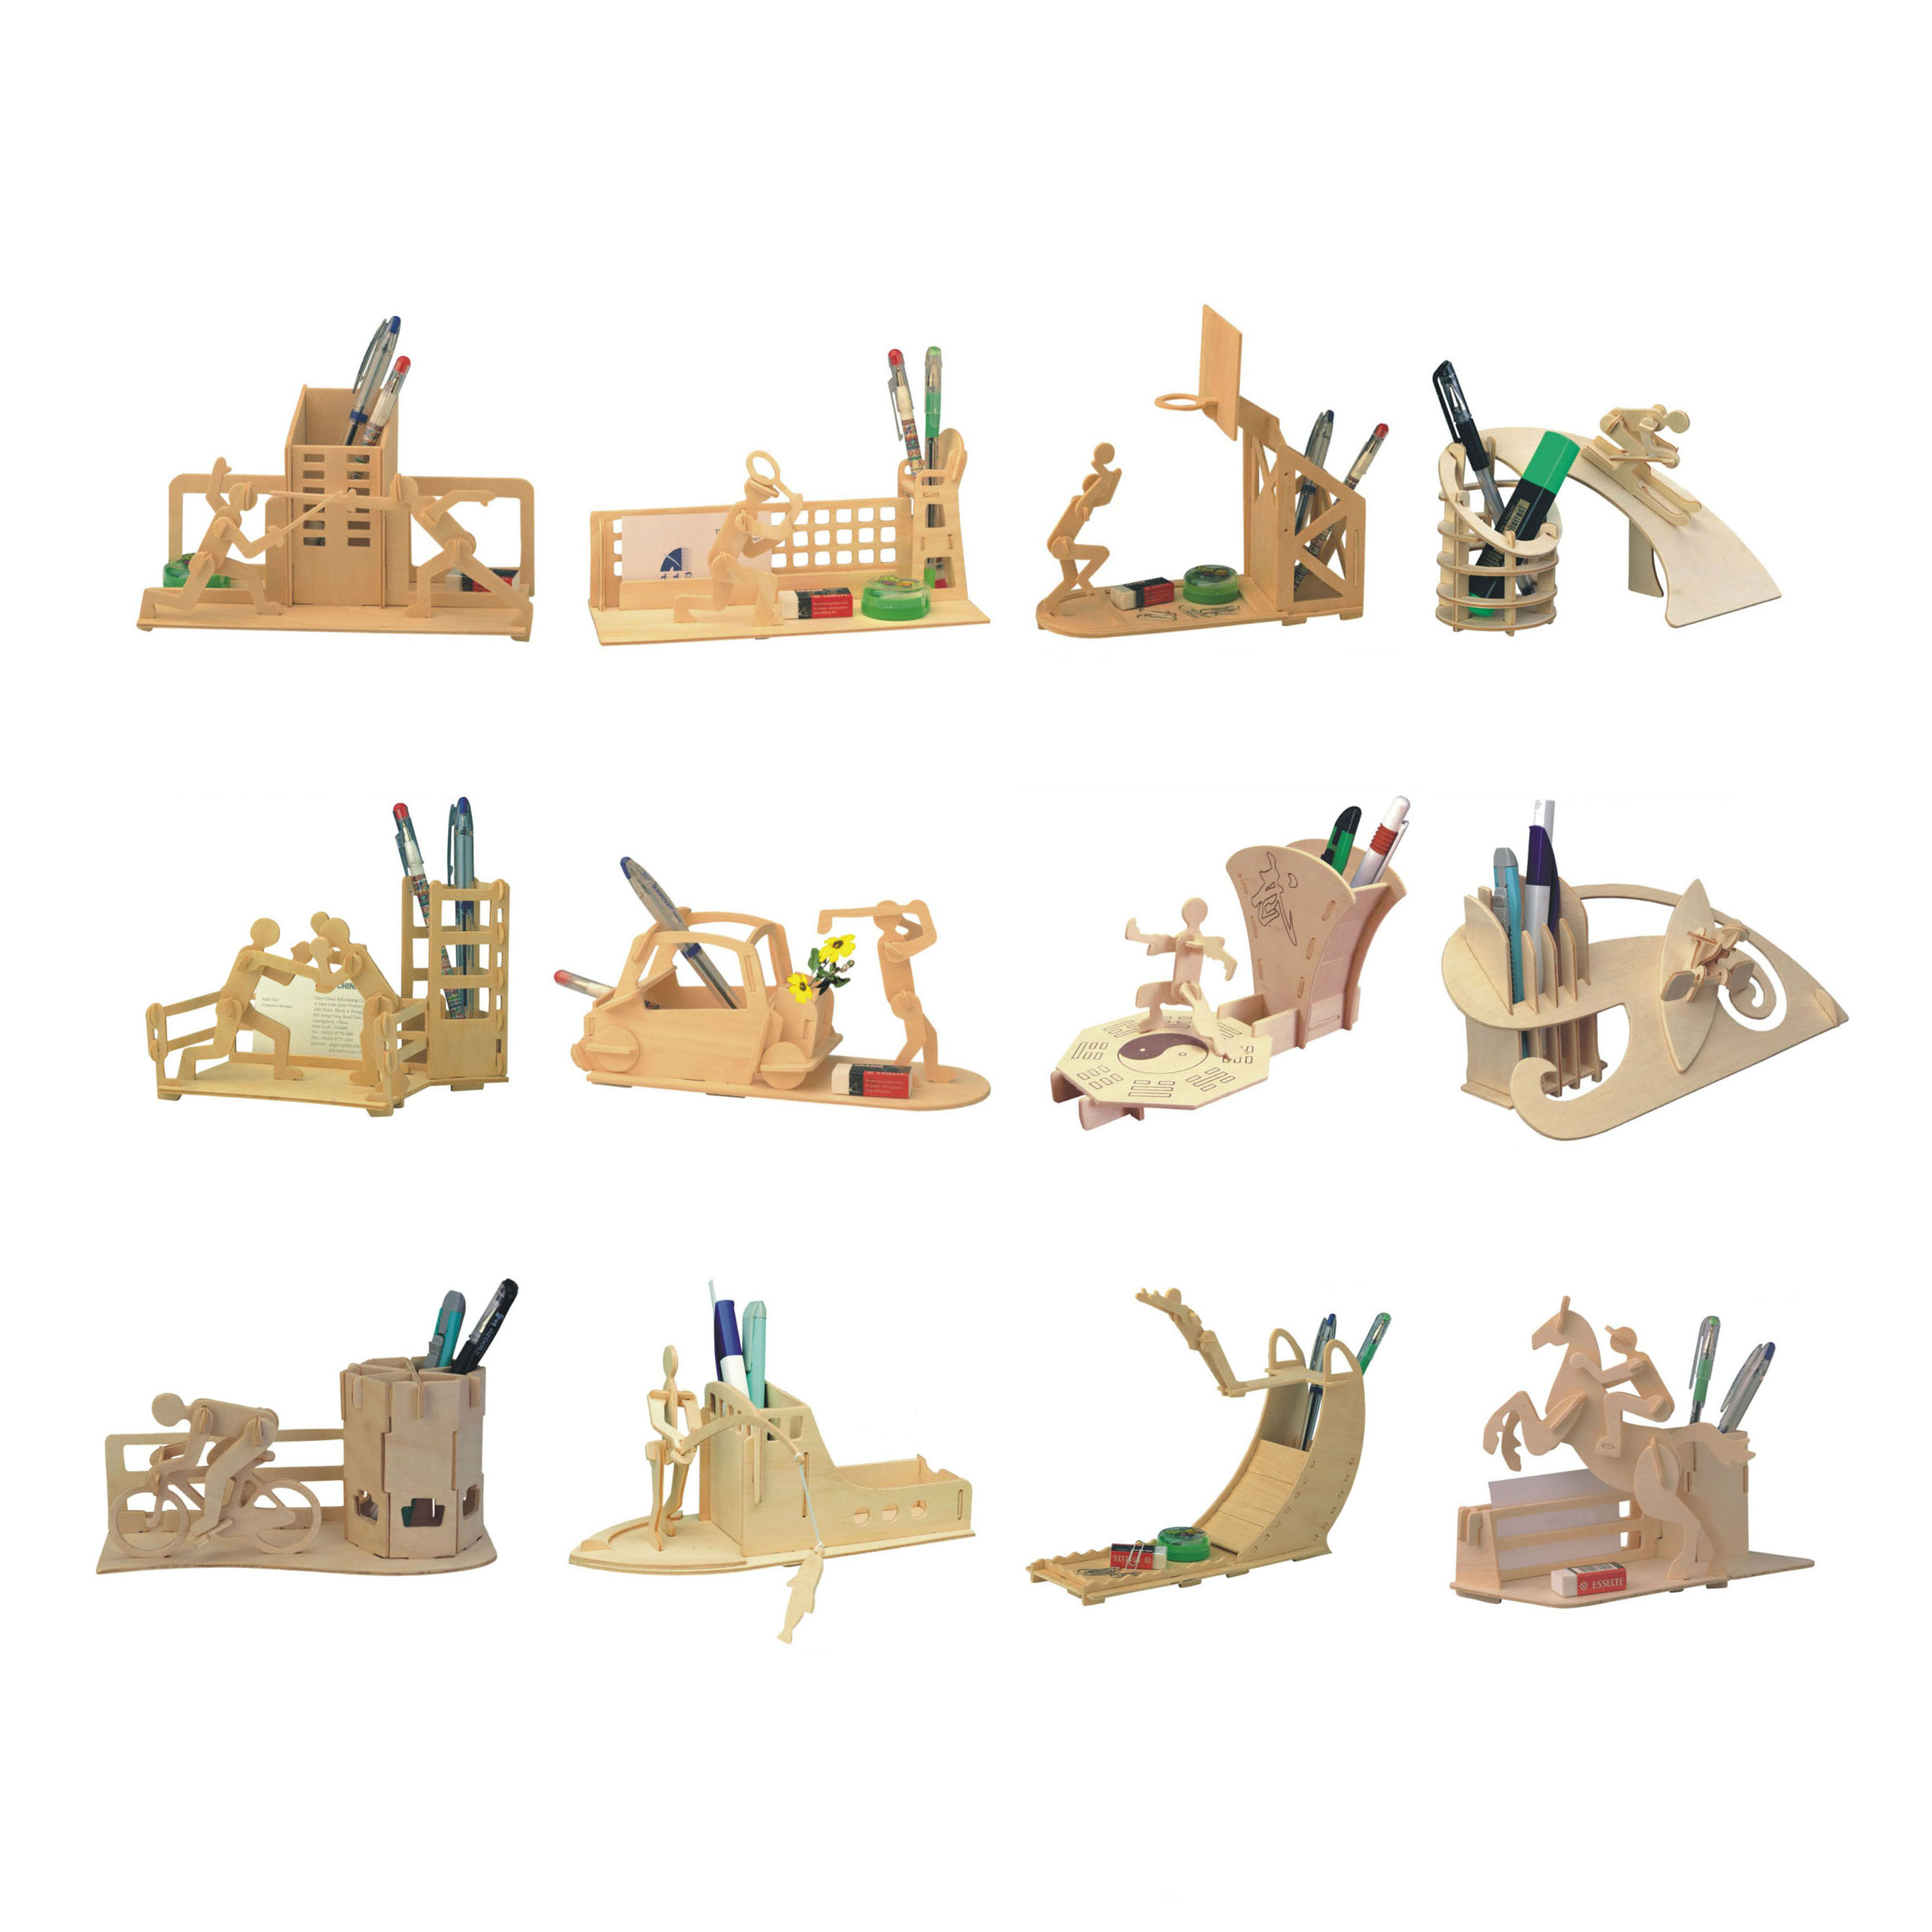 Chanycore Baby Learning Educational Wooden Toys 3D Puzzle Stationery Pen Holder Brush Pot Sports Basketball Tennis